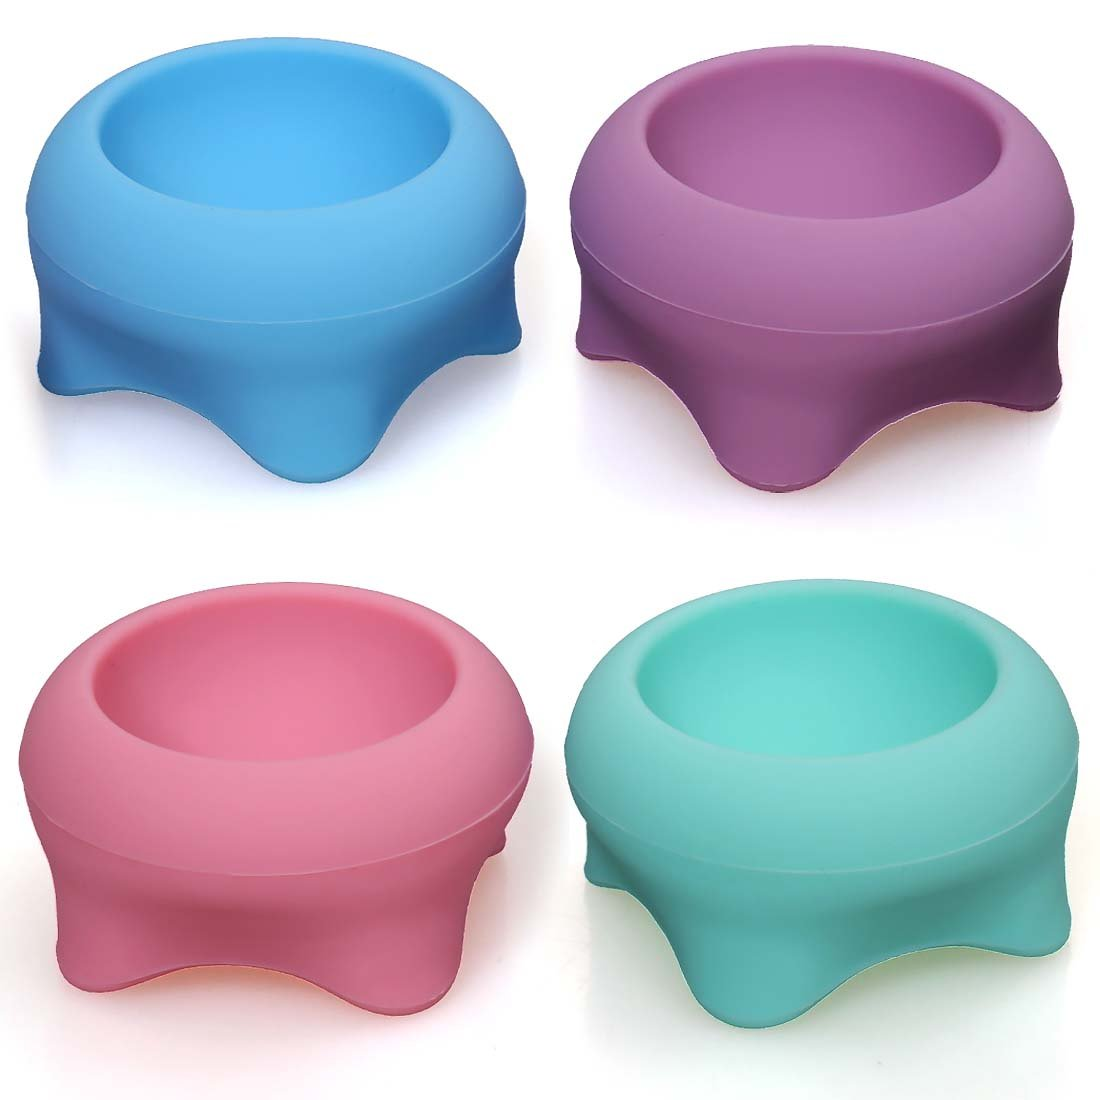 BMC 4pc Silicone Holders for Cosmetic Blender Makeup Sponges - CosmeCup